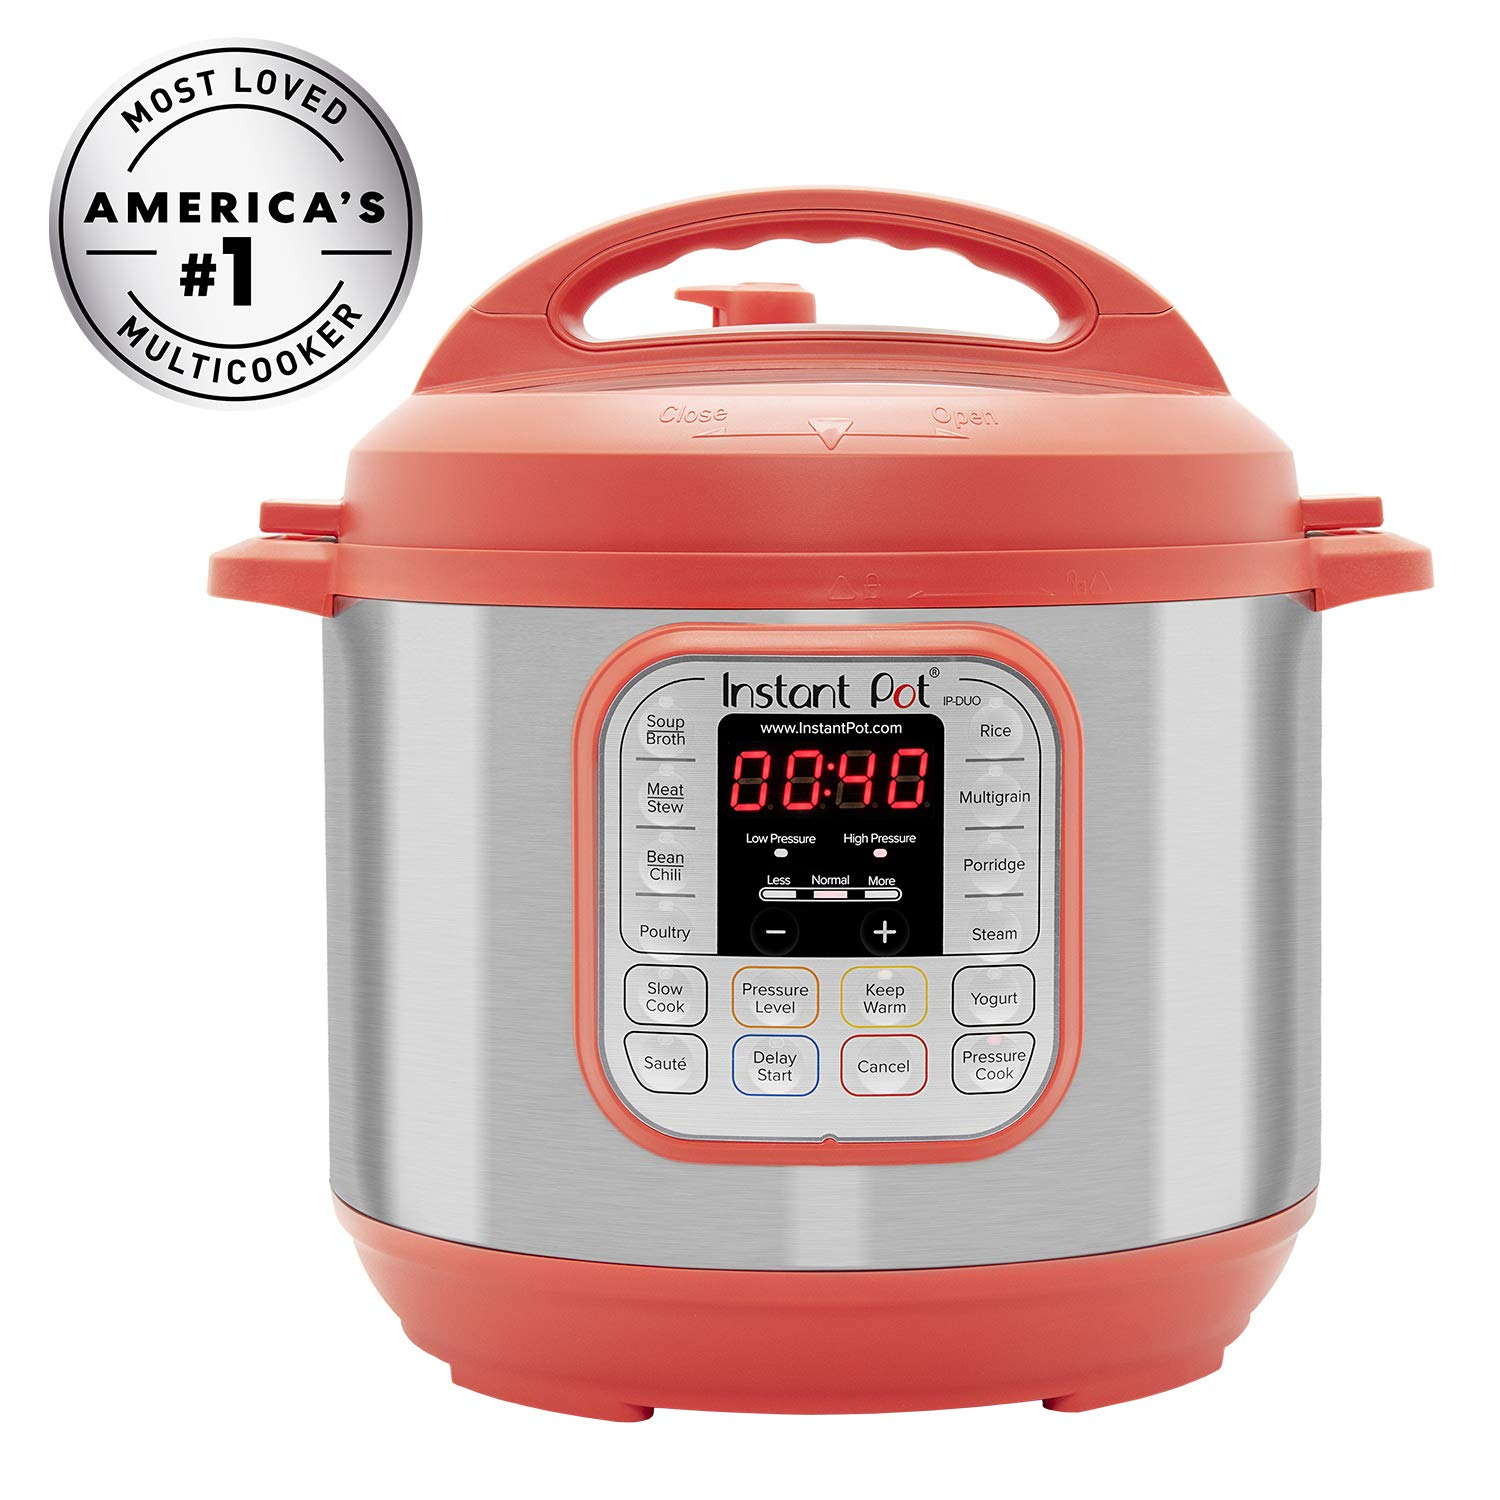 Instant Pot Duo RED 60, 120V-60Hz, 7-in-1 Multi-Use Programmable Pressure, Slow, Rice Cooker, Steamer, Sauté, Yogurt Maker and Warmer, Stainless Steel- 6 Qt by Instant Pot